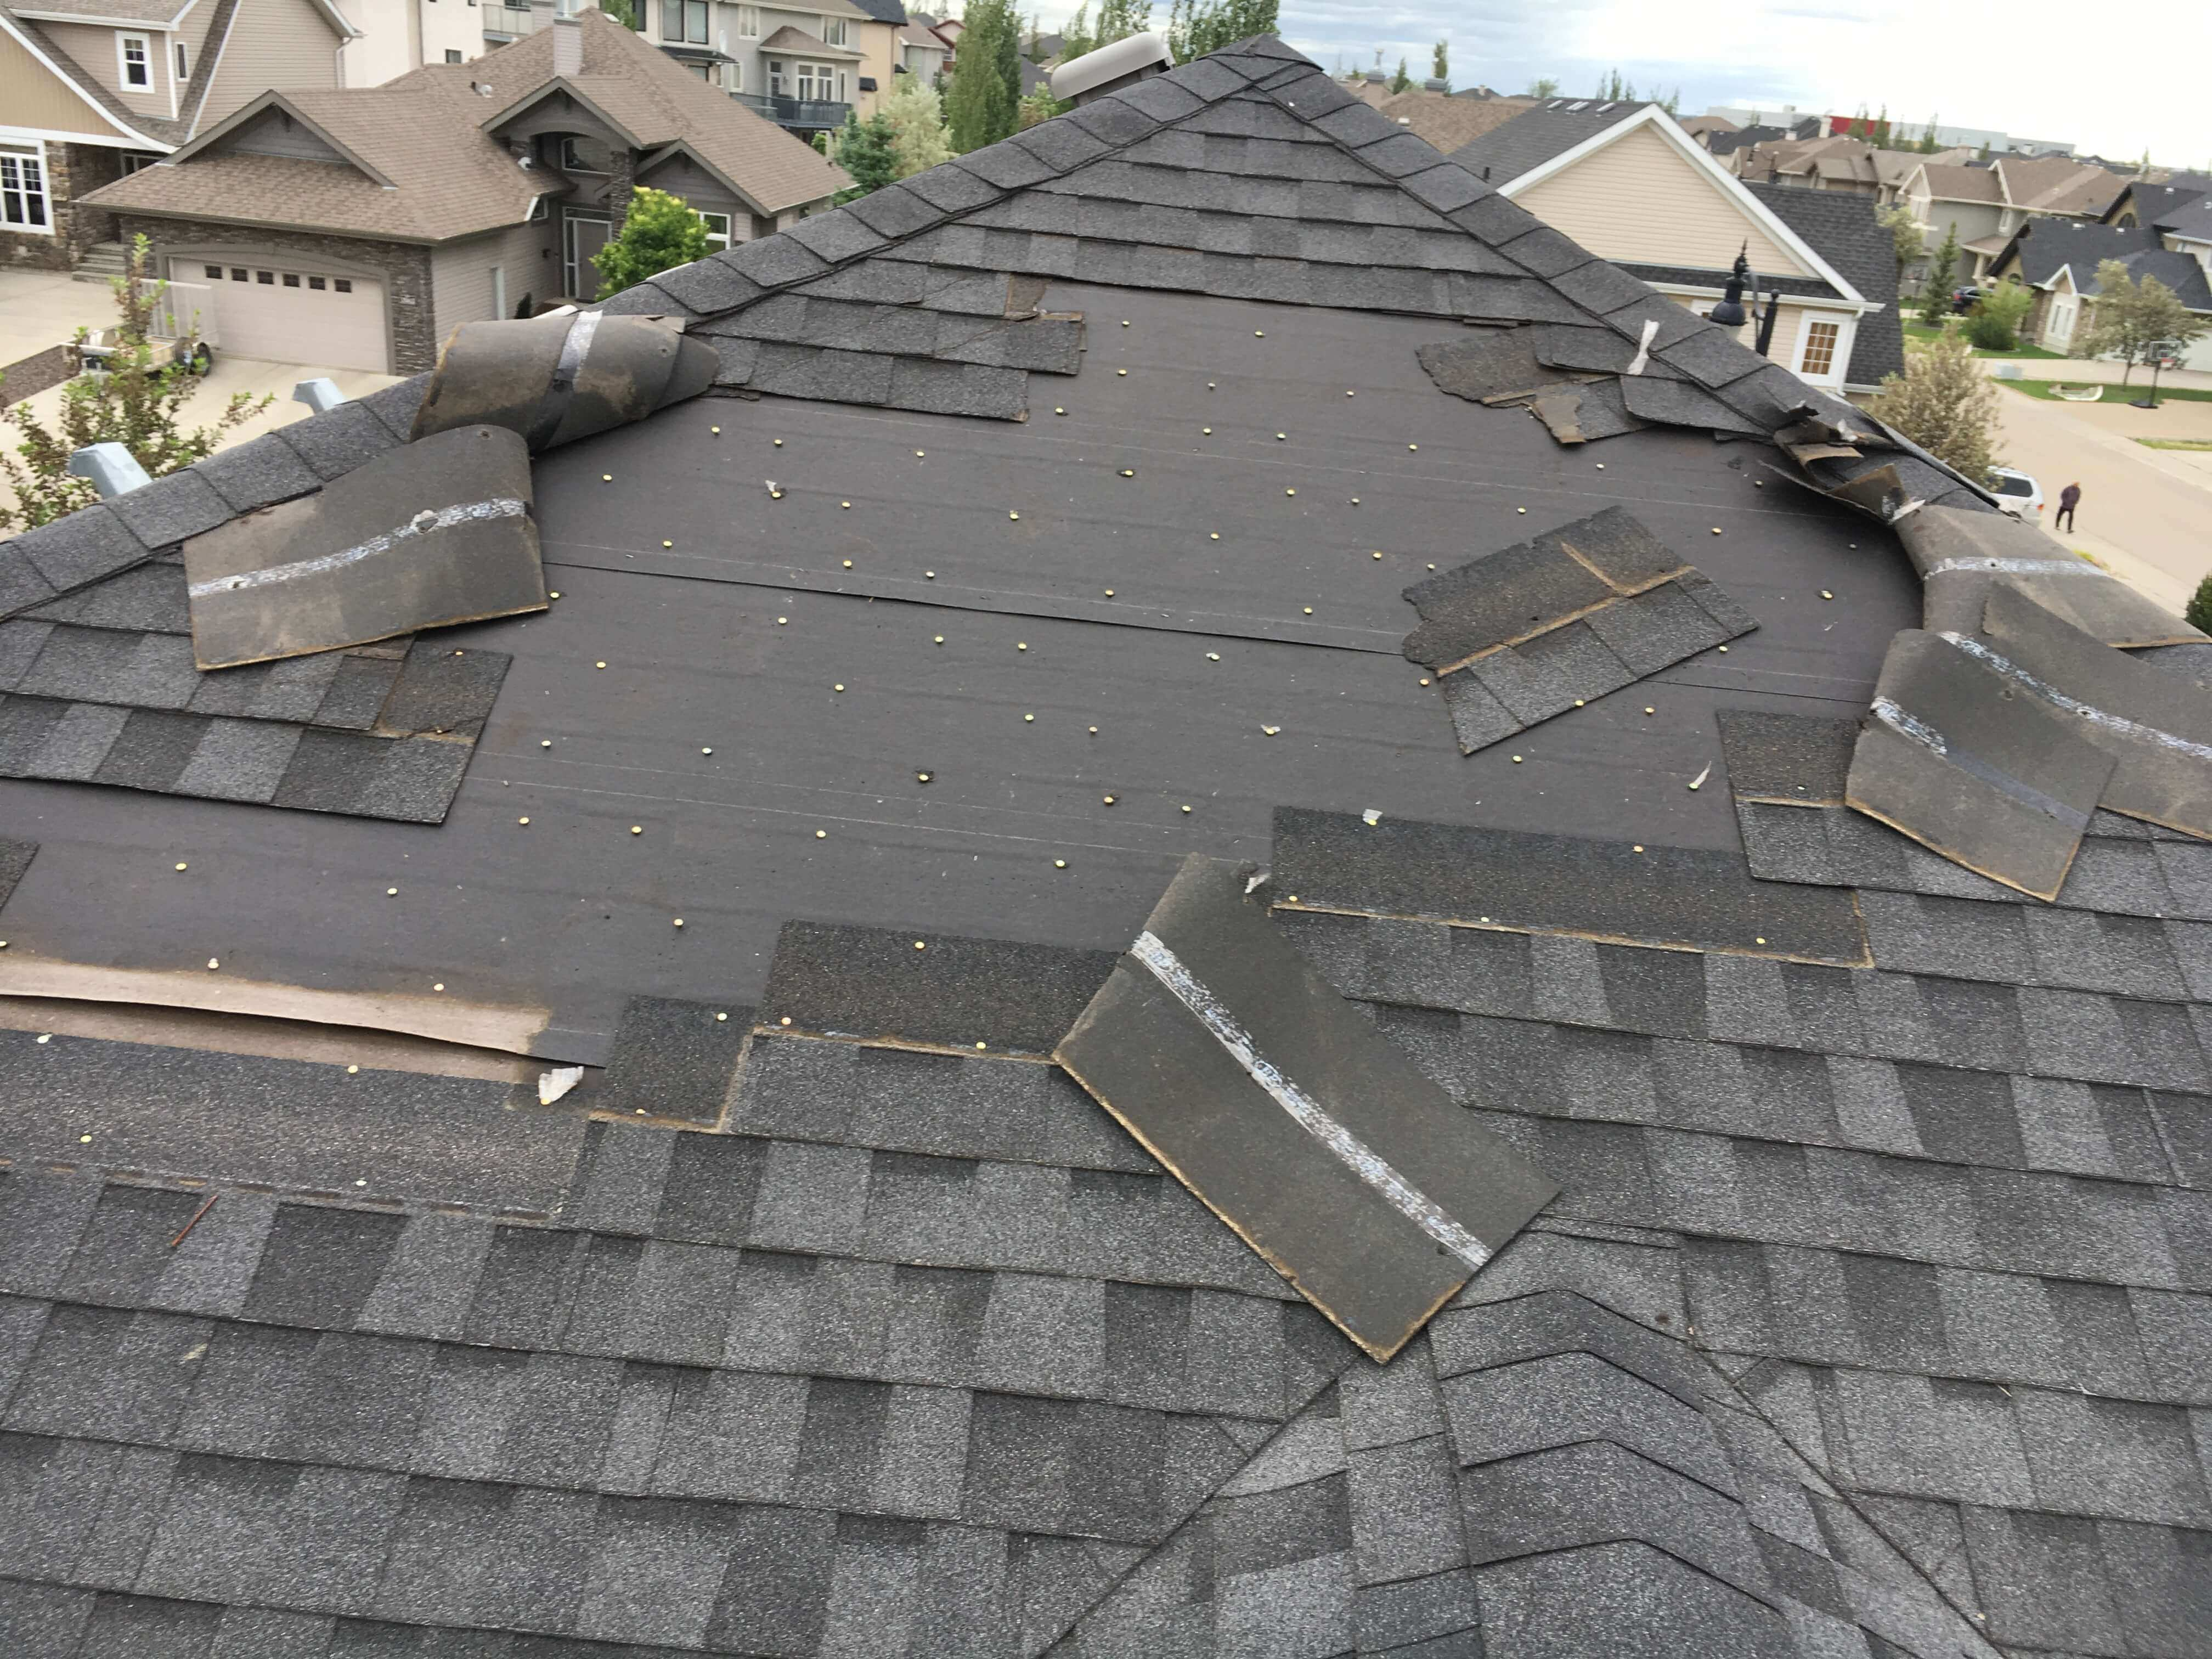 edmonton-roofing-contractors-repair-replacement-services.jpg